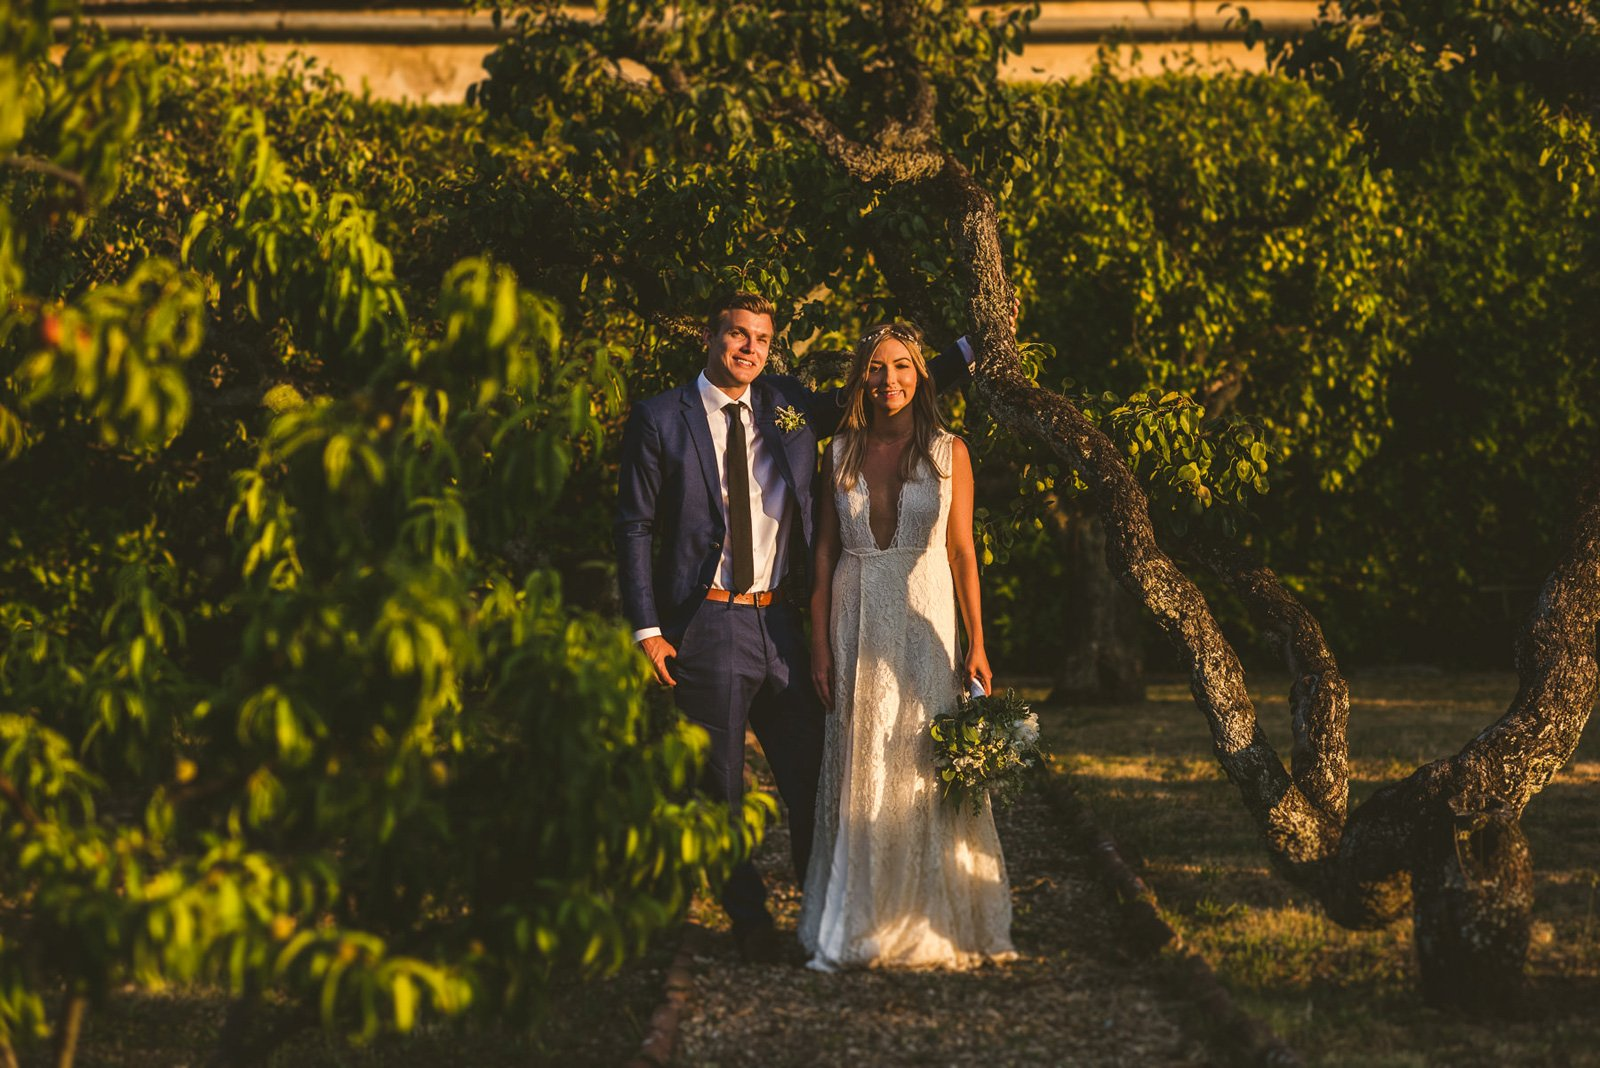 A+L Wedding at Montechiaro, Siena by Federico Pannacci 88